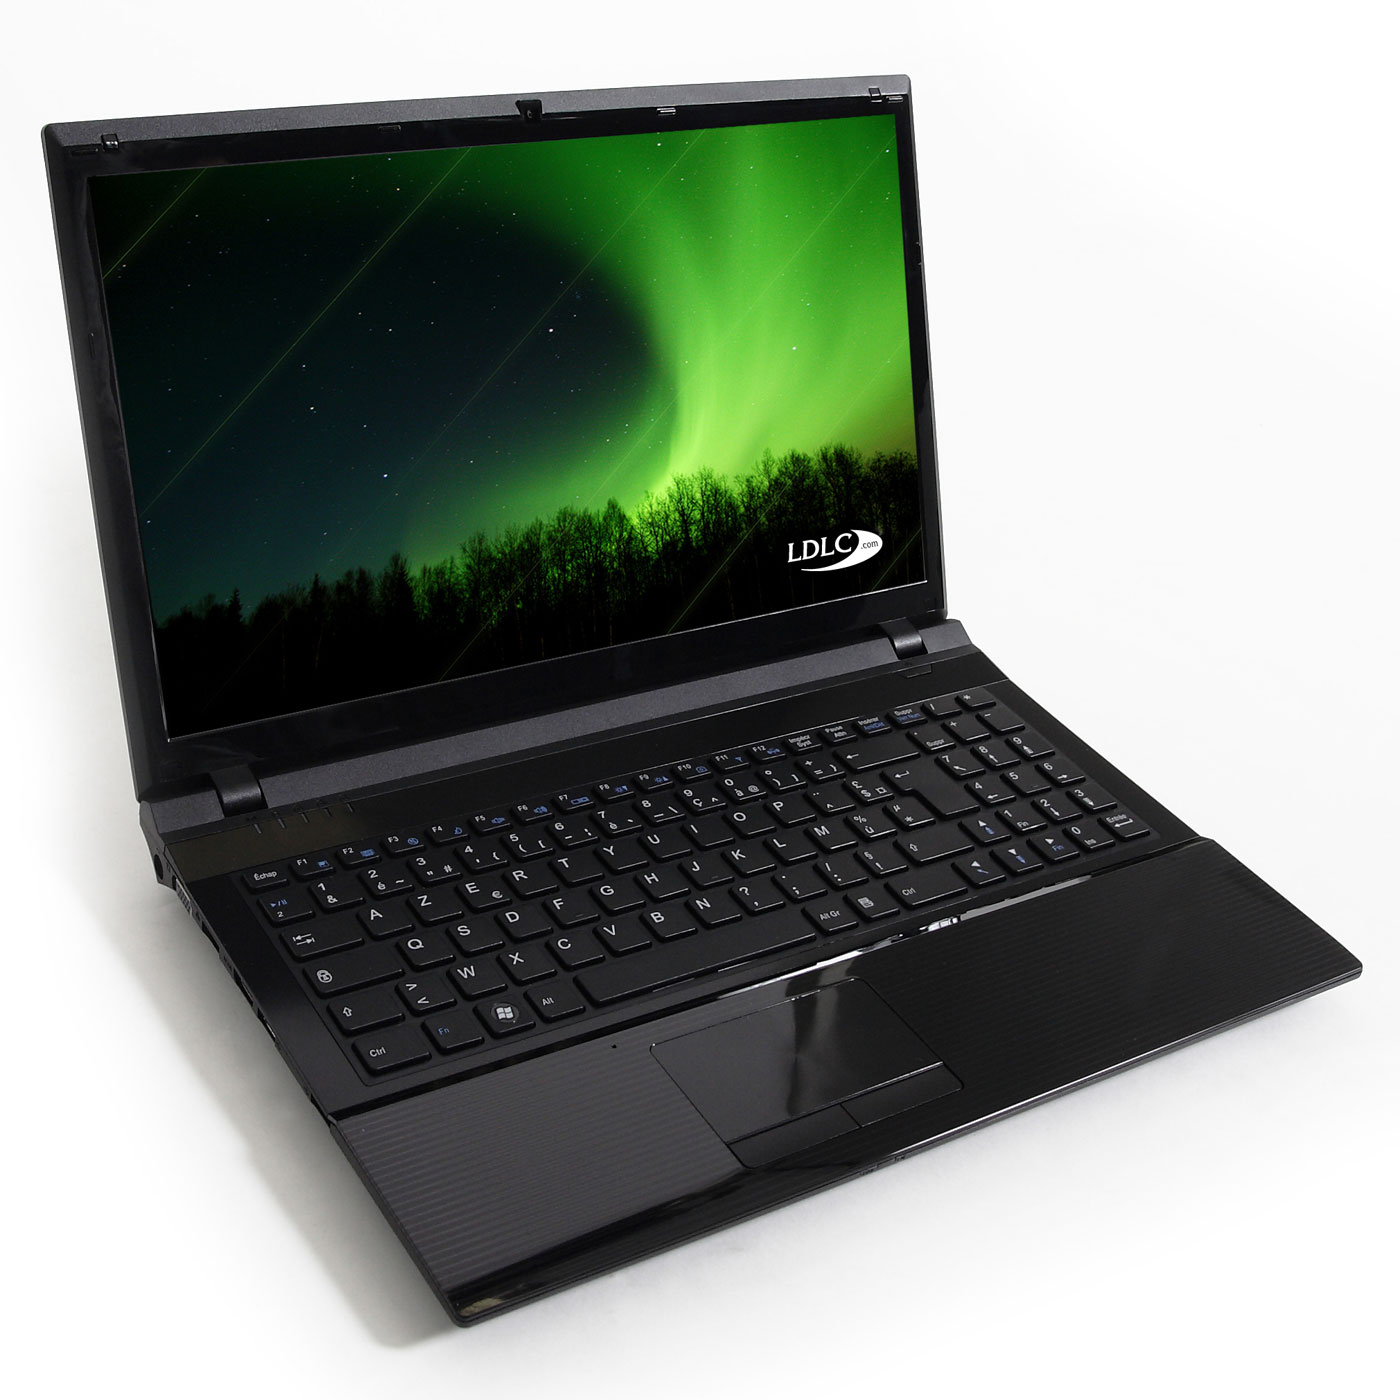 "PC portable LDLC Aurore BB1-B8-2-H2 Intel Celeron B800 2 Go 250 Go 15.6"" LCD Graveur DVD Wi-Fi N/Bluetooth Webcam (sans OS)"